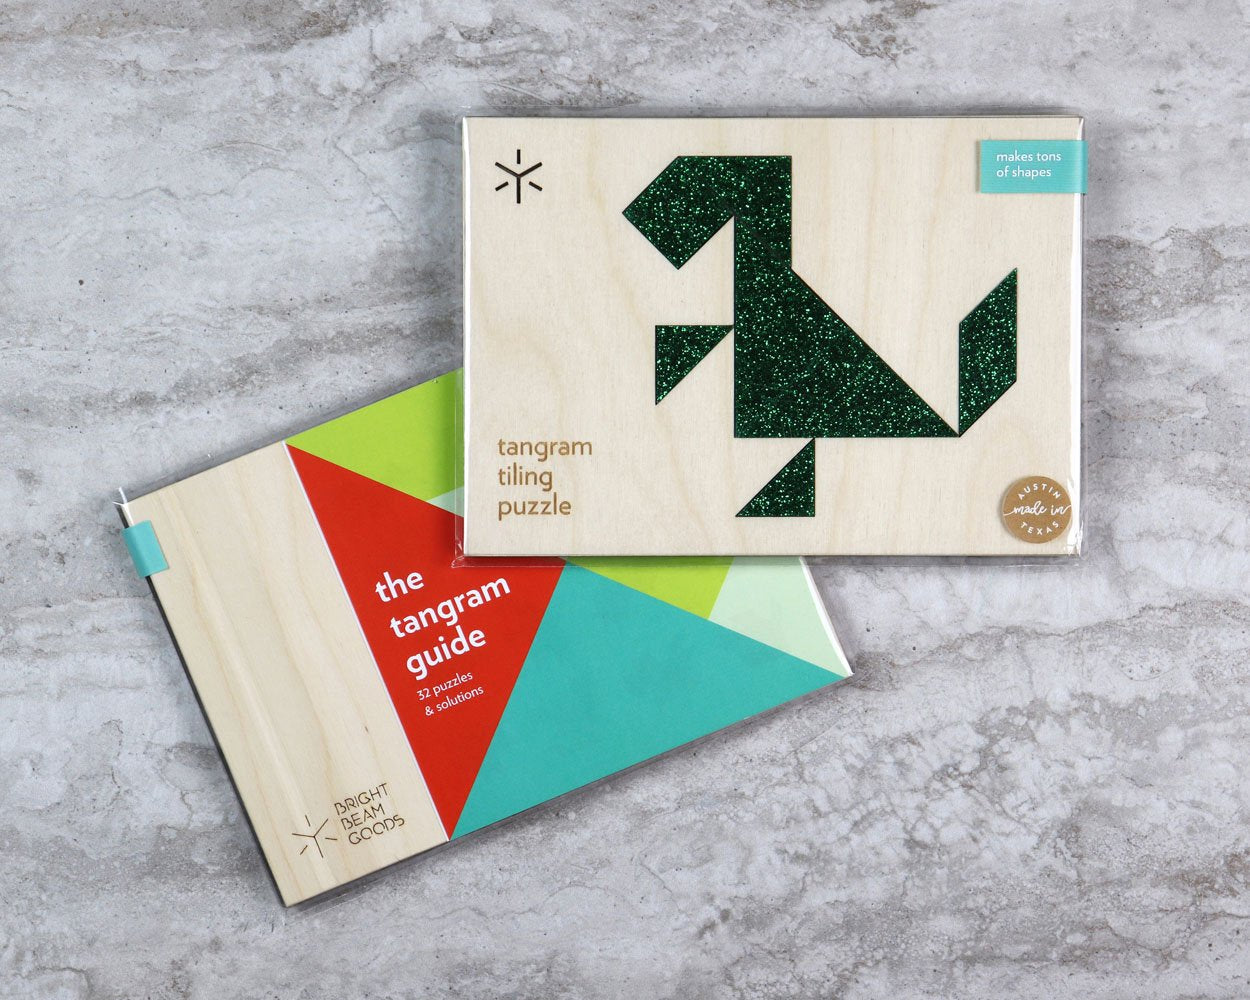 Dinosaur tangram puzzle in packaging